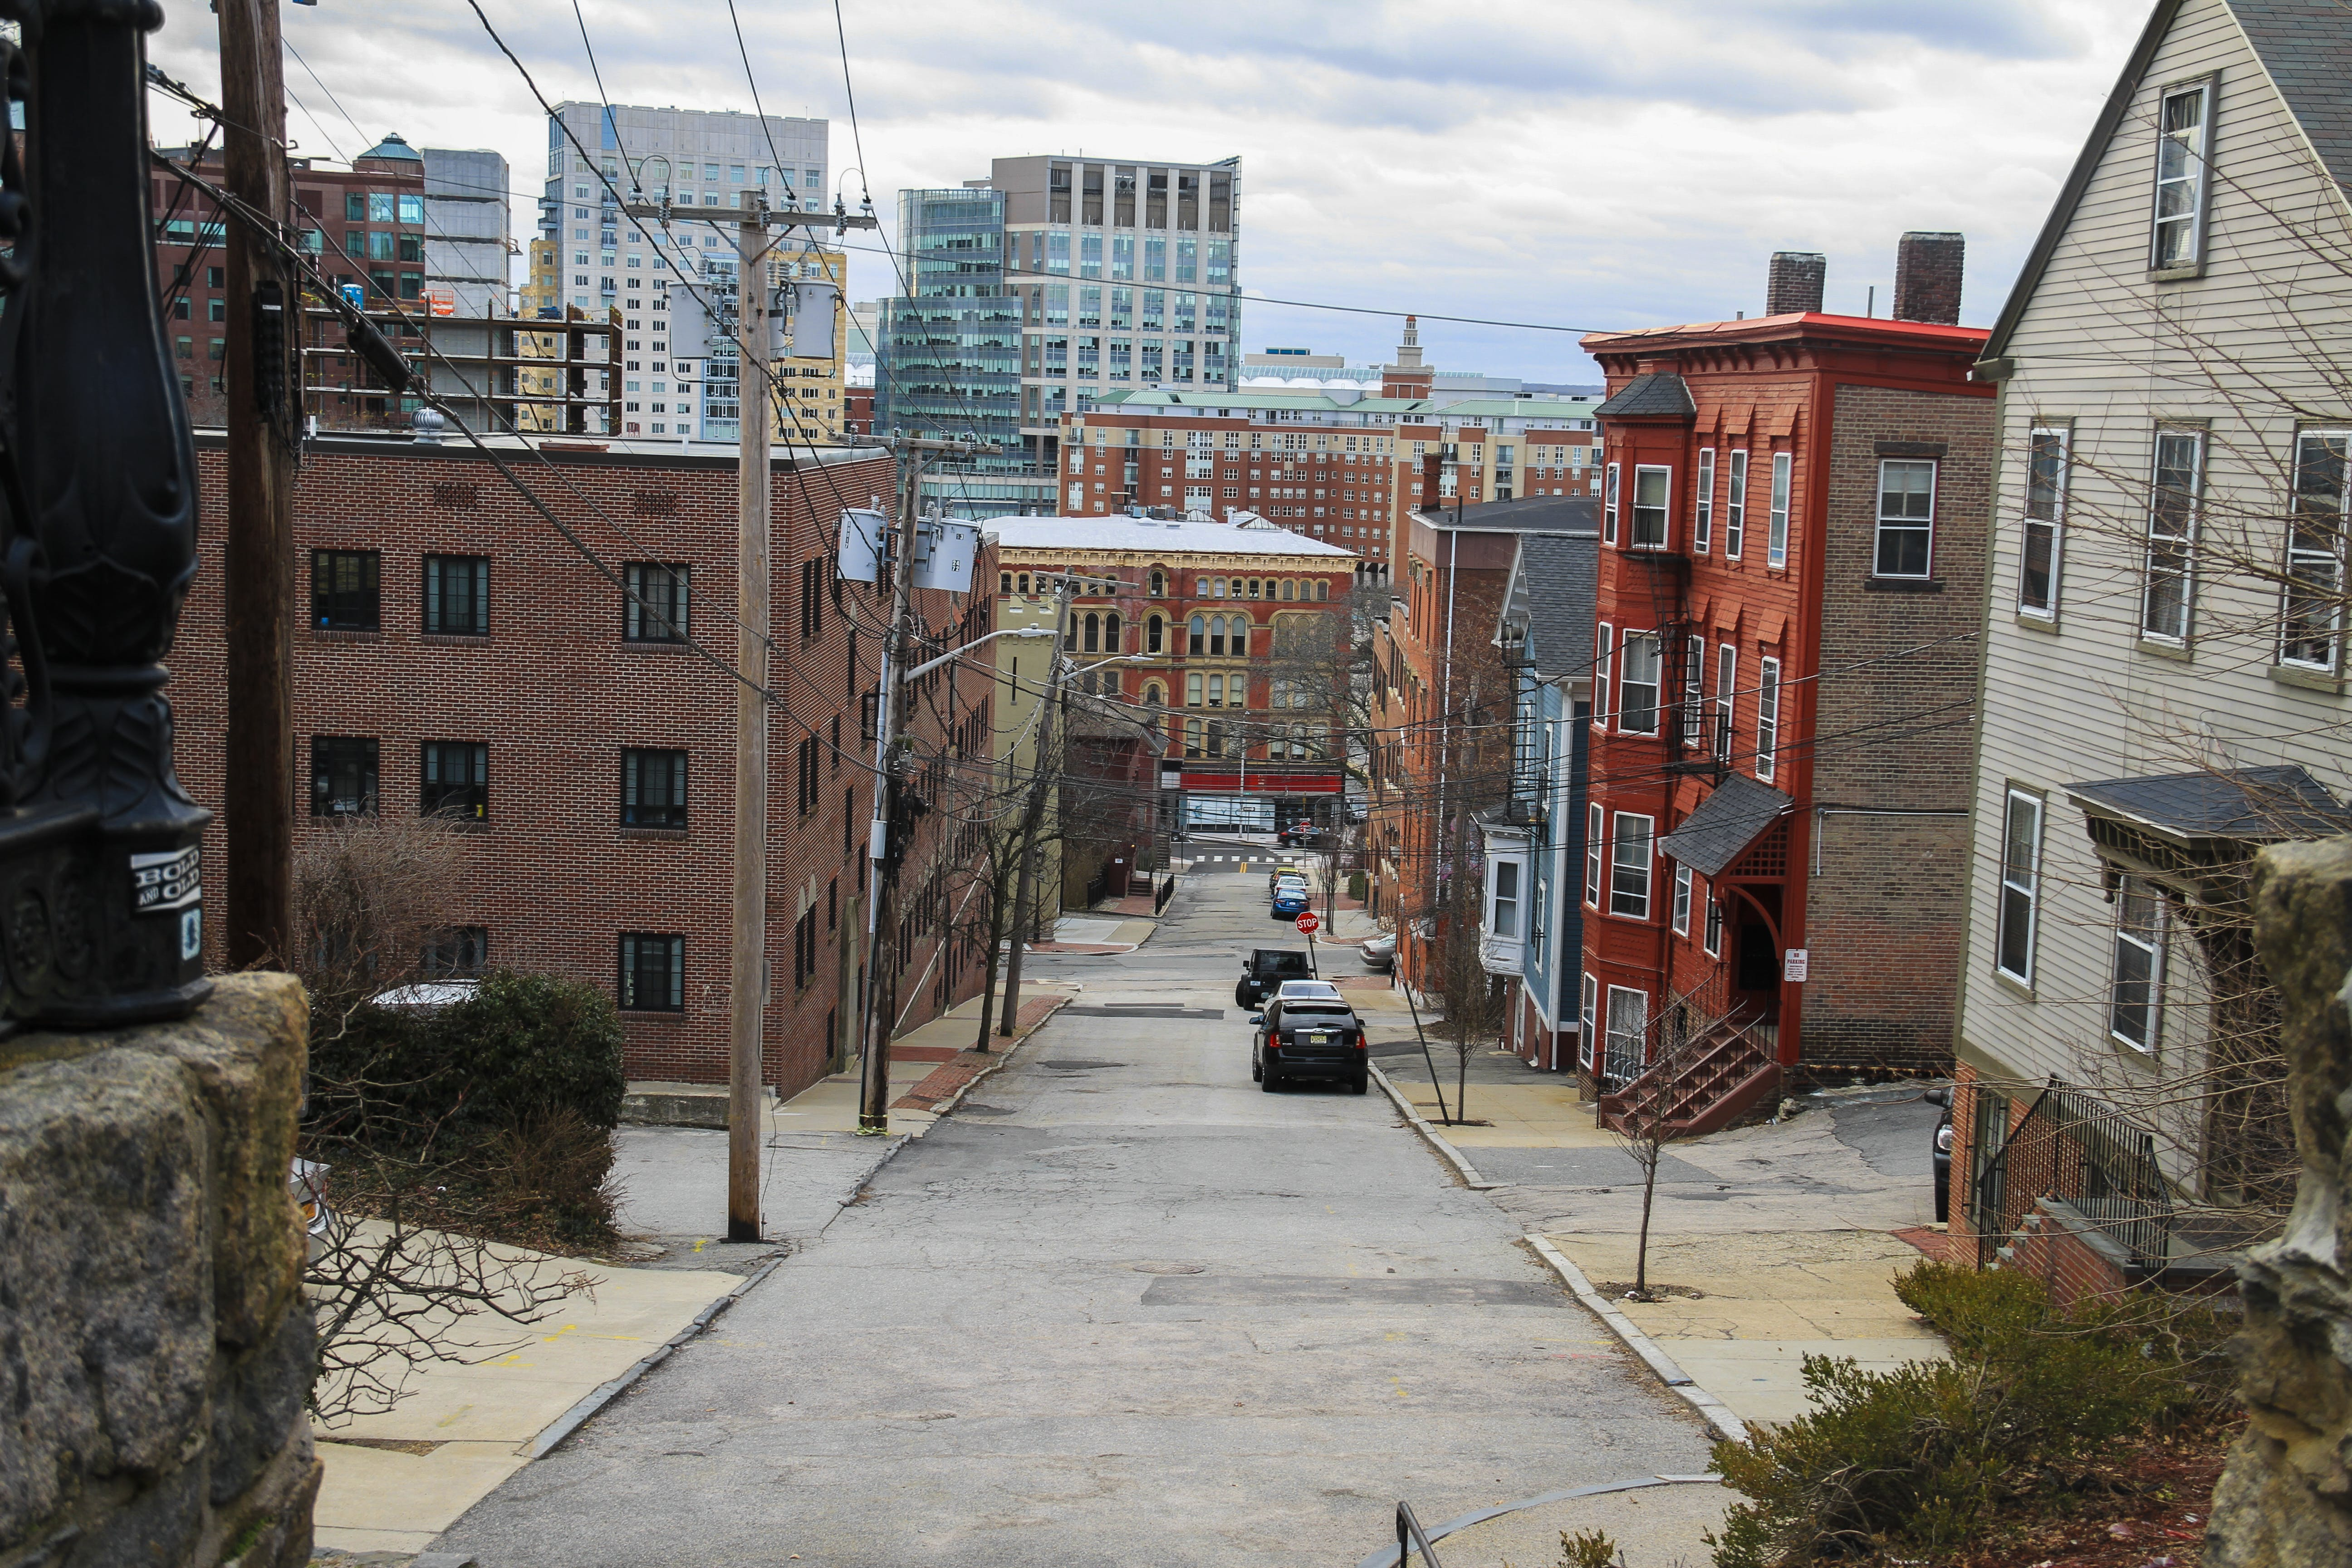 Free stock photo of alleyway, apartment buildings, apartments, cars on street